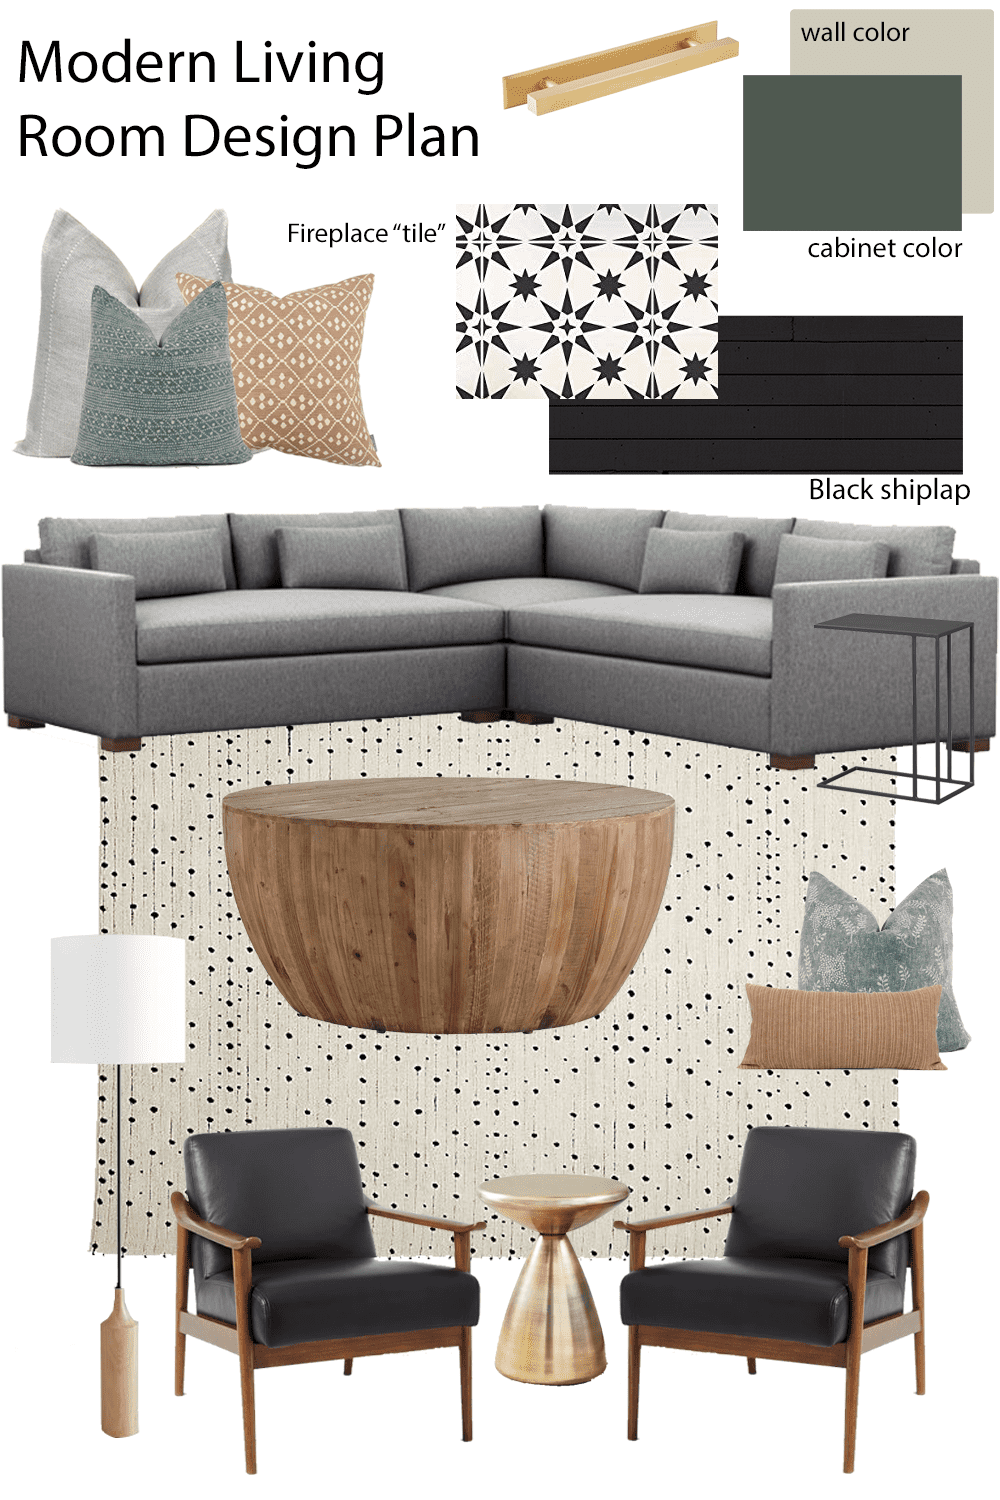 Sharing our modern living room design plan!  Get some living room ideas including modern sectional, decorative pillow arrangements, updating a fireplace, black shiplap fireplace, stenciled fireplace, DIY builtins using an IKEA hack, and more!  Can't wait to get started on the living room renovation!  #livingroom #diy #livingroomdesign